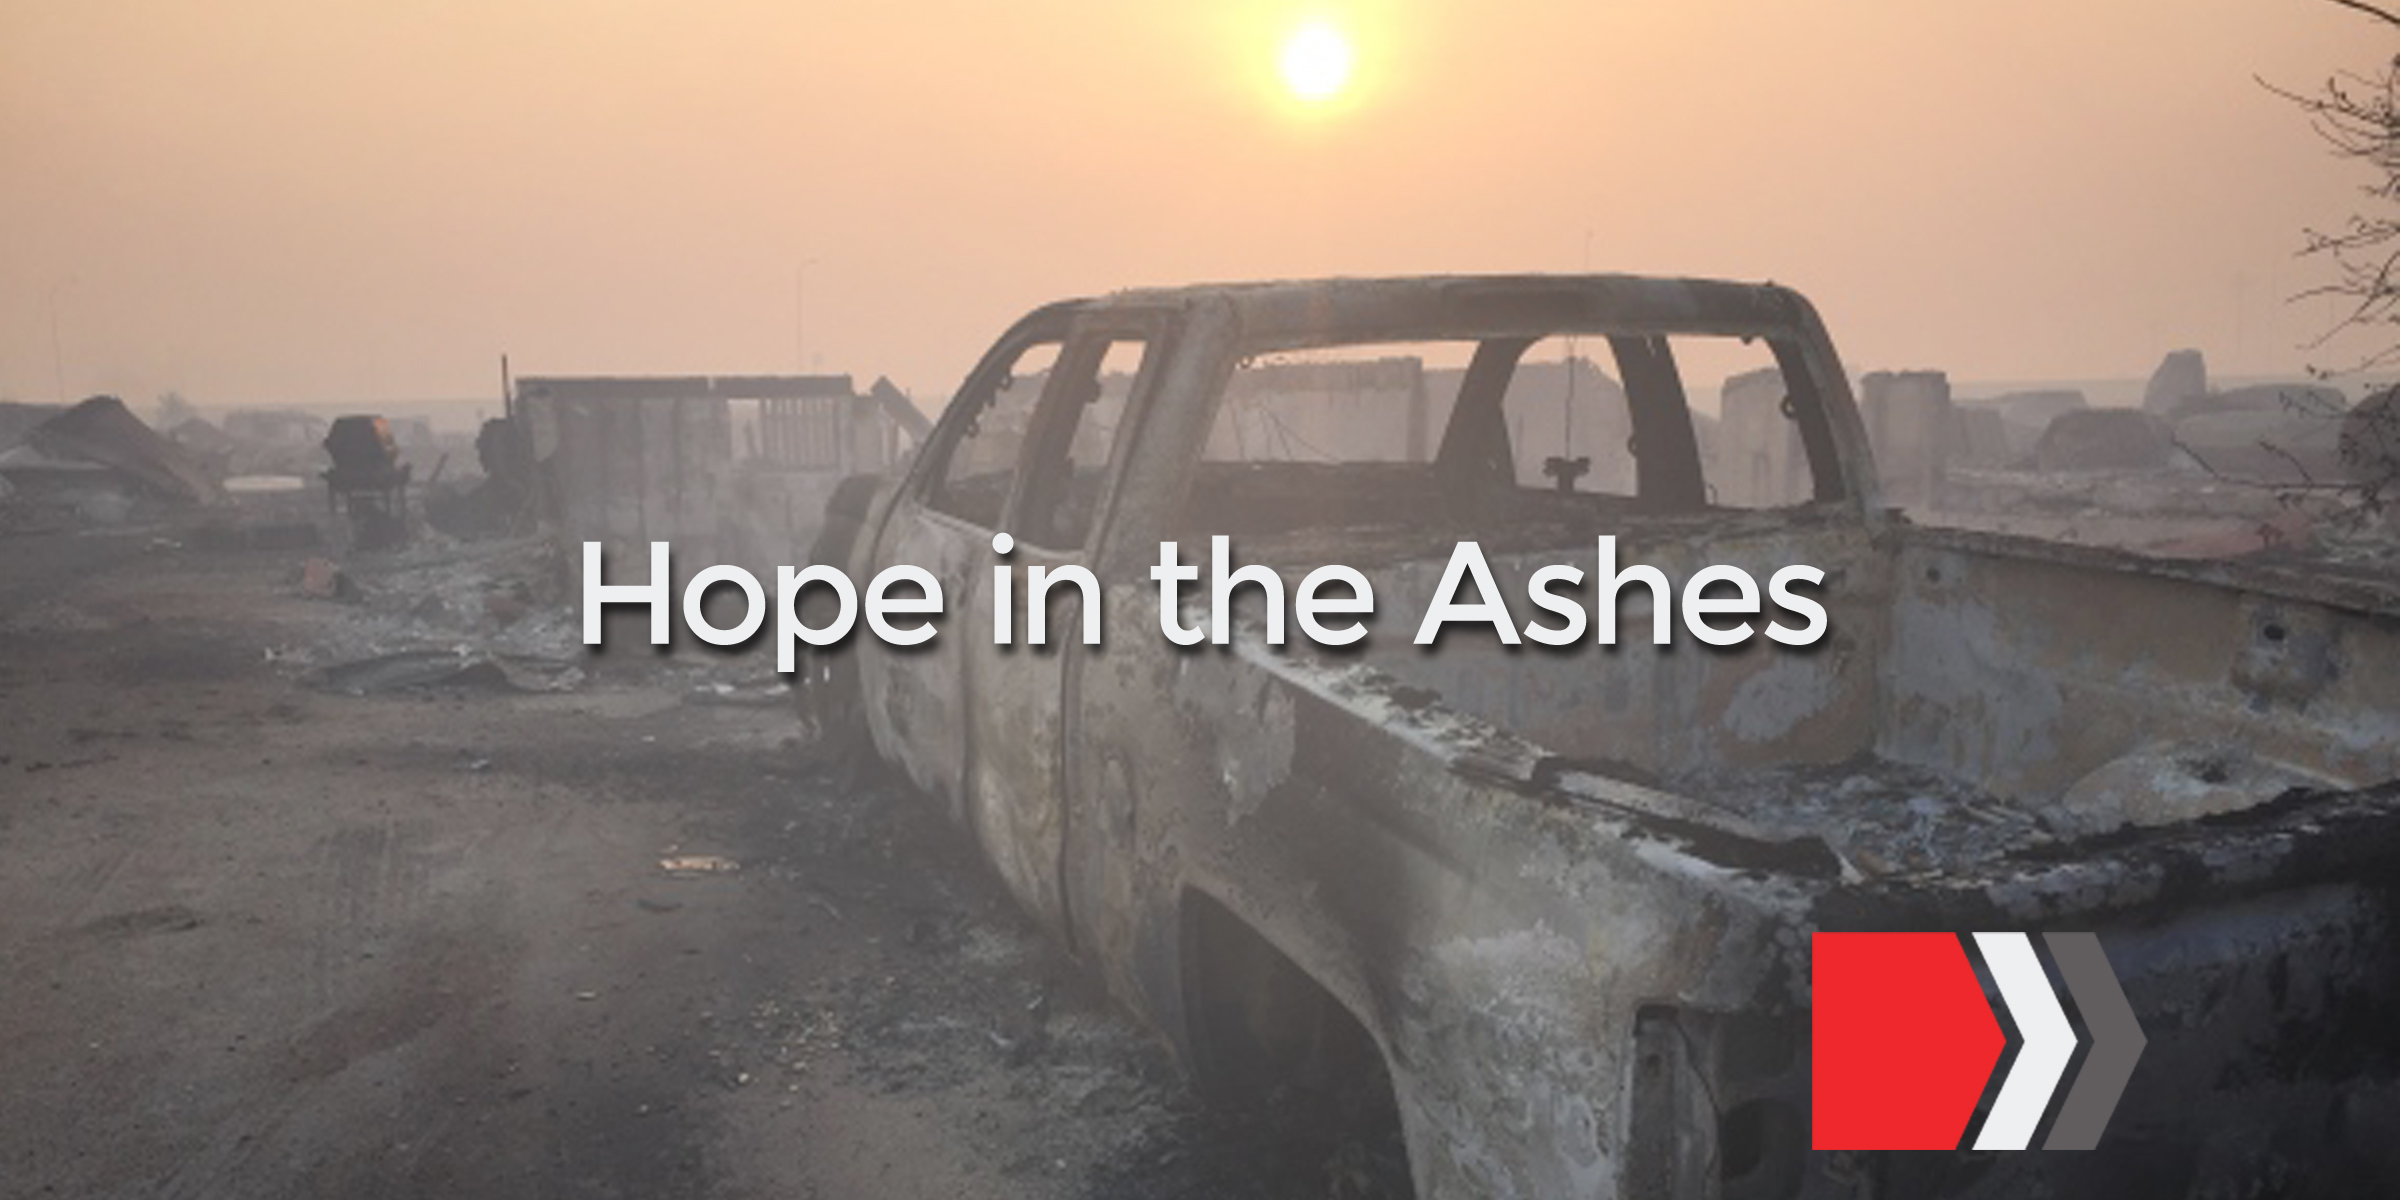 Hope in the Ashes